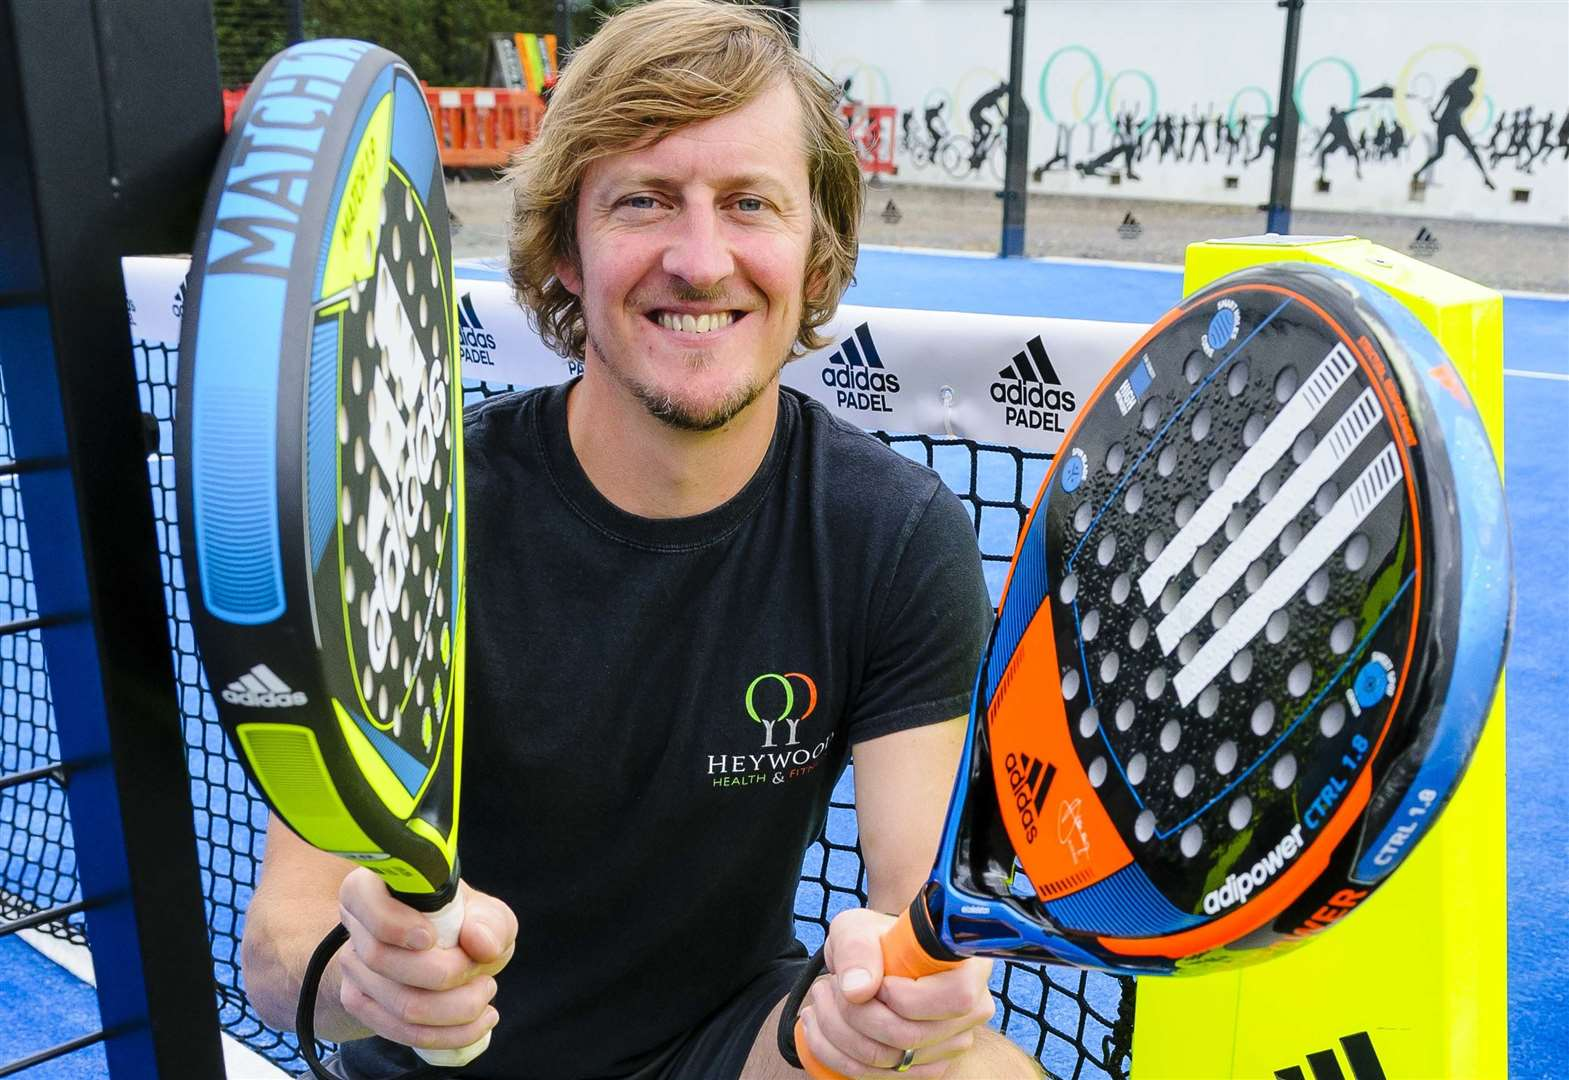 New balls, please, as padel courts open in Diss